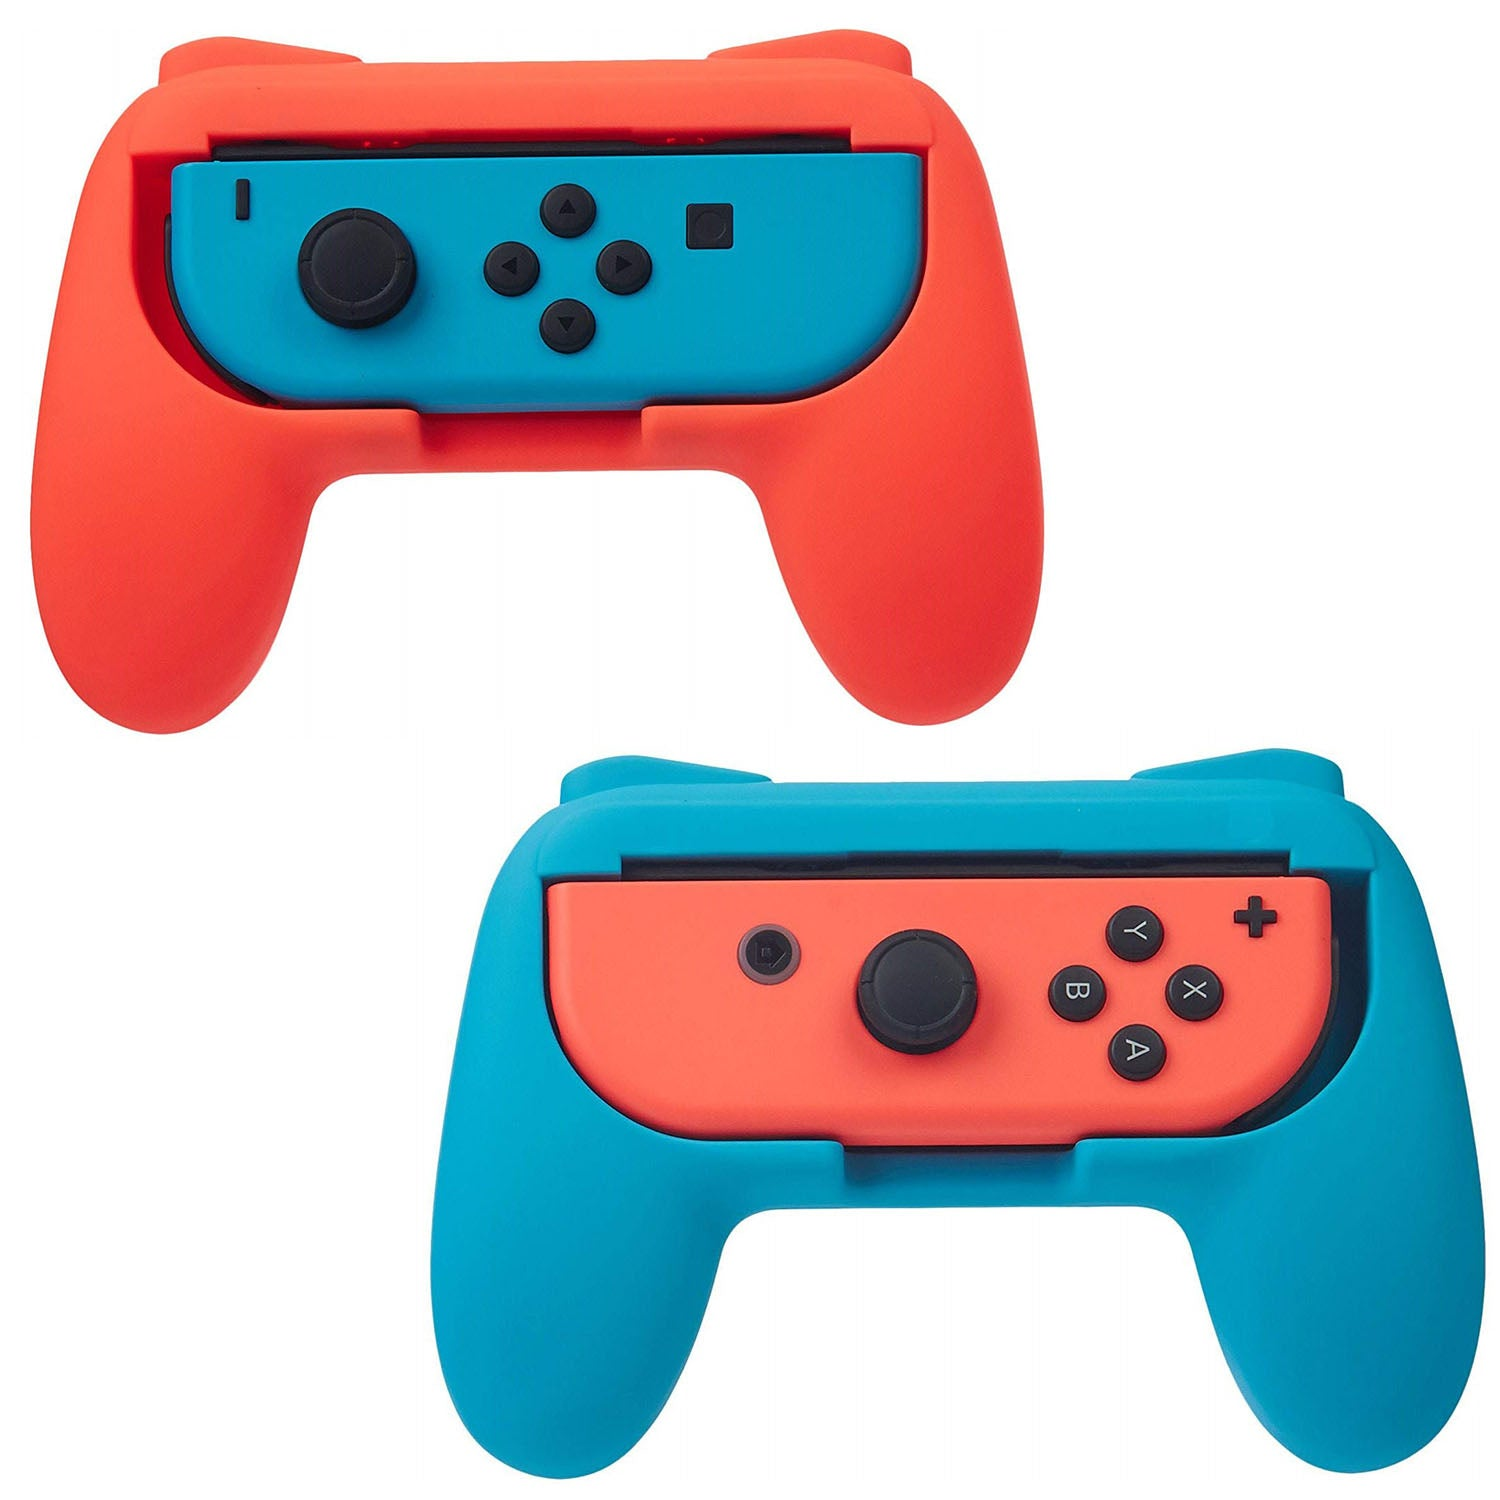 2 Pack Wear Resitant Handle Grip for Nintendo Switch Joy-Con Controllers 1